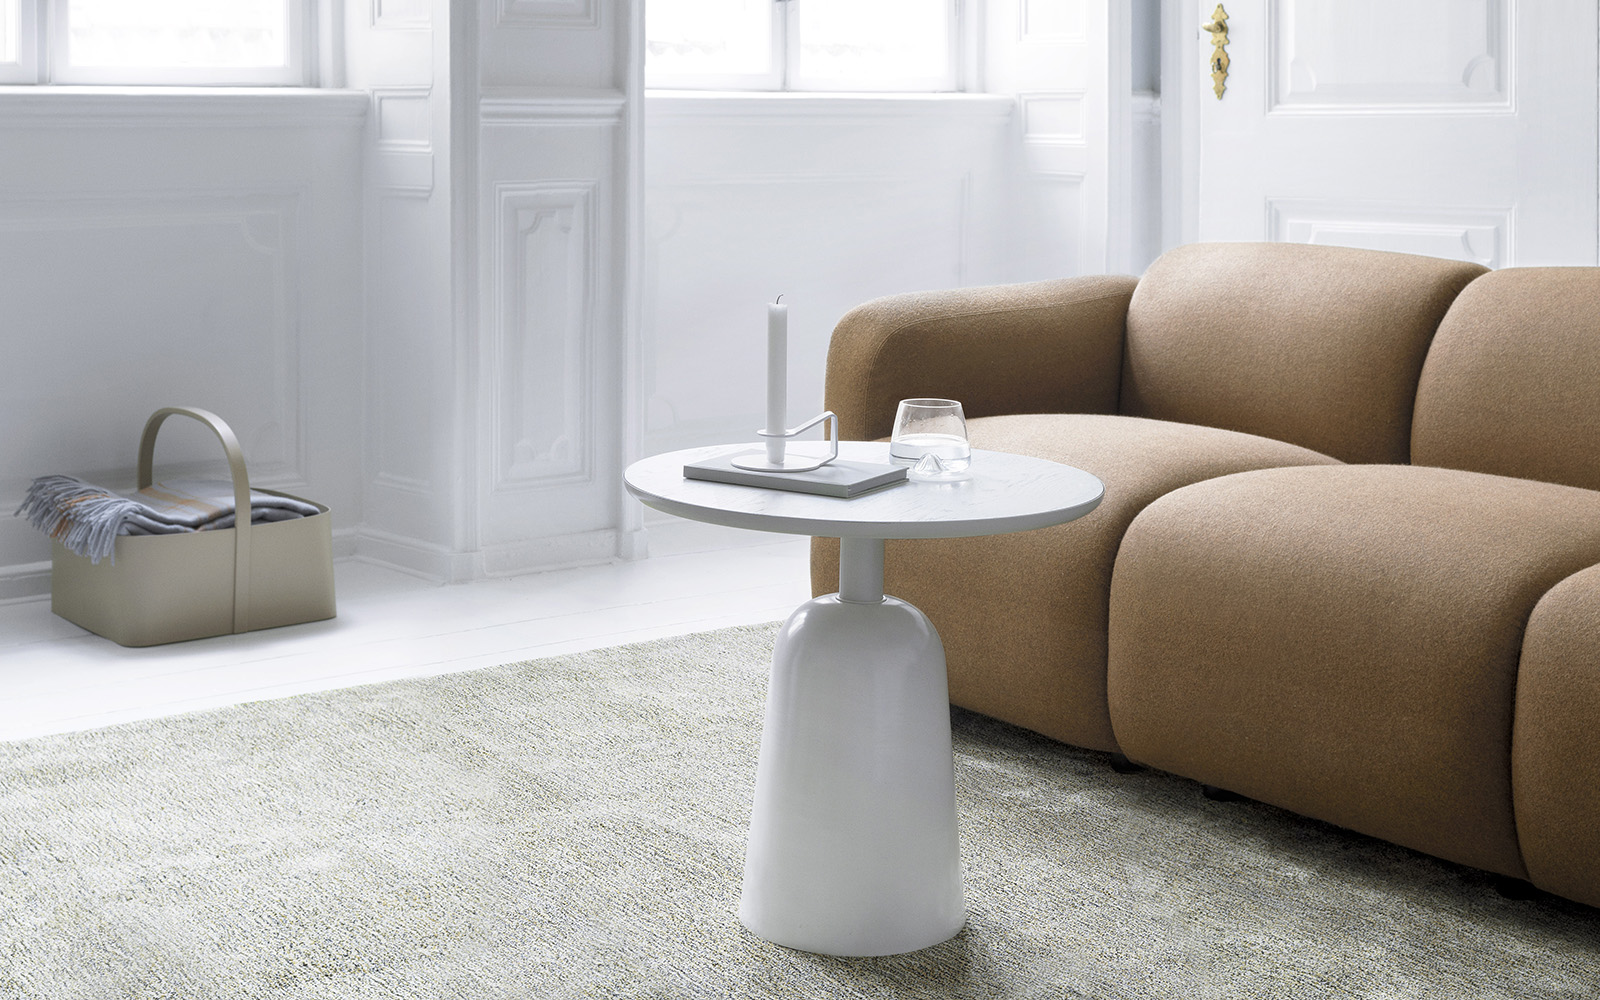 Allegro Follow Couchtisch Turn-tisch: Von Normann Copenhagen - Bruno Wickart Blog